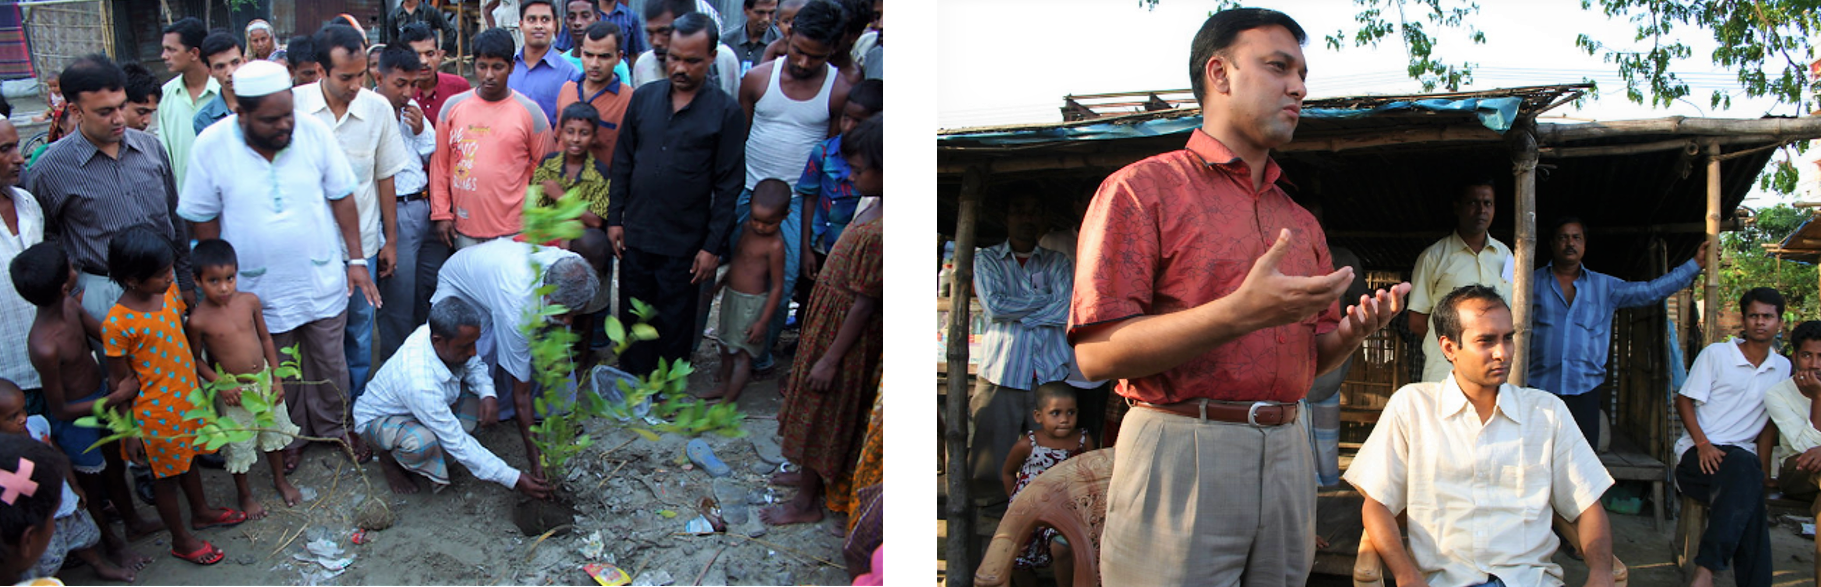 Involving leaders: In order to raise awareness of the potential to use used toilet bags as fertilizer, demonstration plots were planted in Mymensingh Pourashava, Bangladesh. Left picture: a community leader from Kalibari community helps plant a lemon tree. Right picture: The Mayor of Mymensingh Pourashava speaking to the Malgudam community after creating the demonstration plot. Source: WHEATON (2009)